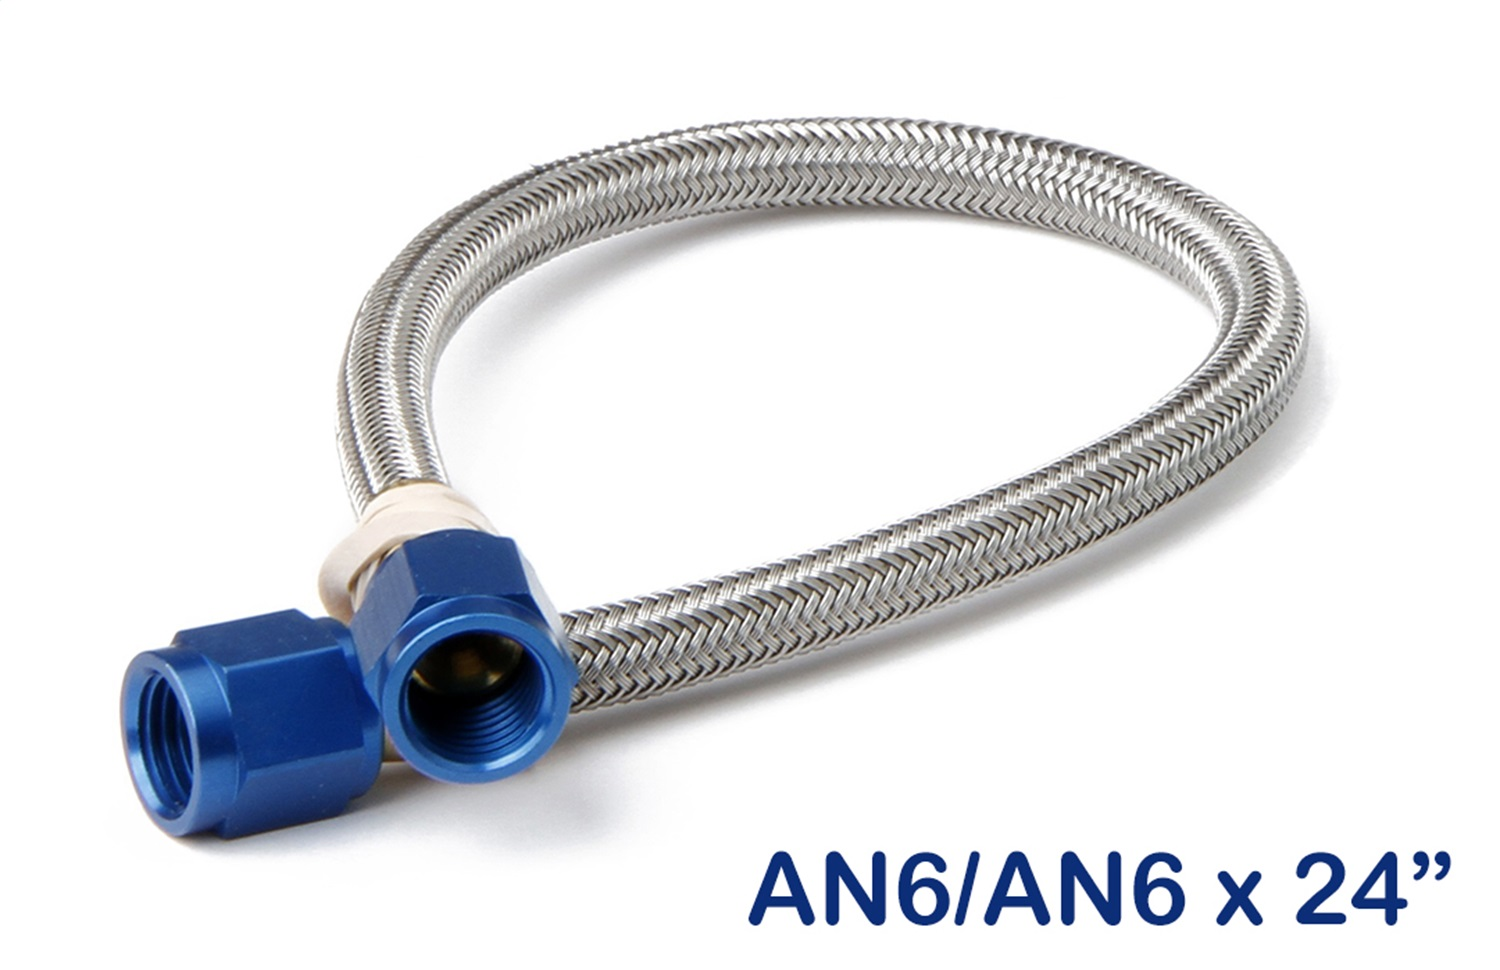 NOS 15410NOS Stainless Steel Braided Hose